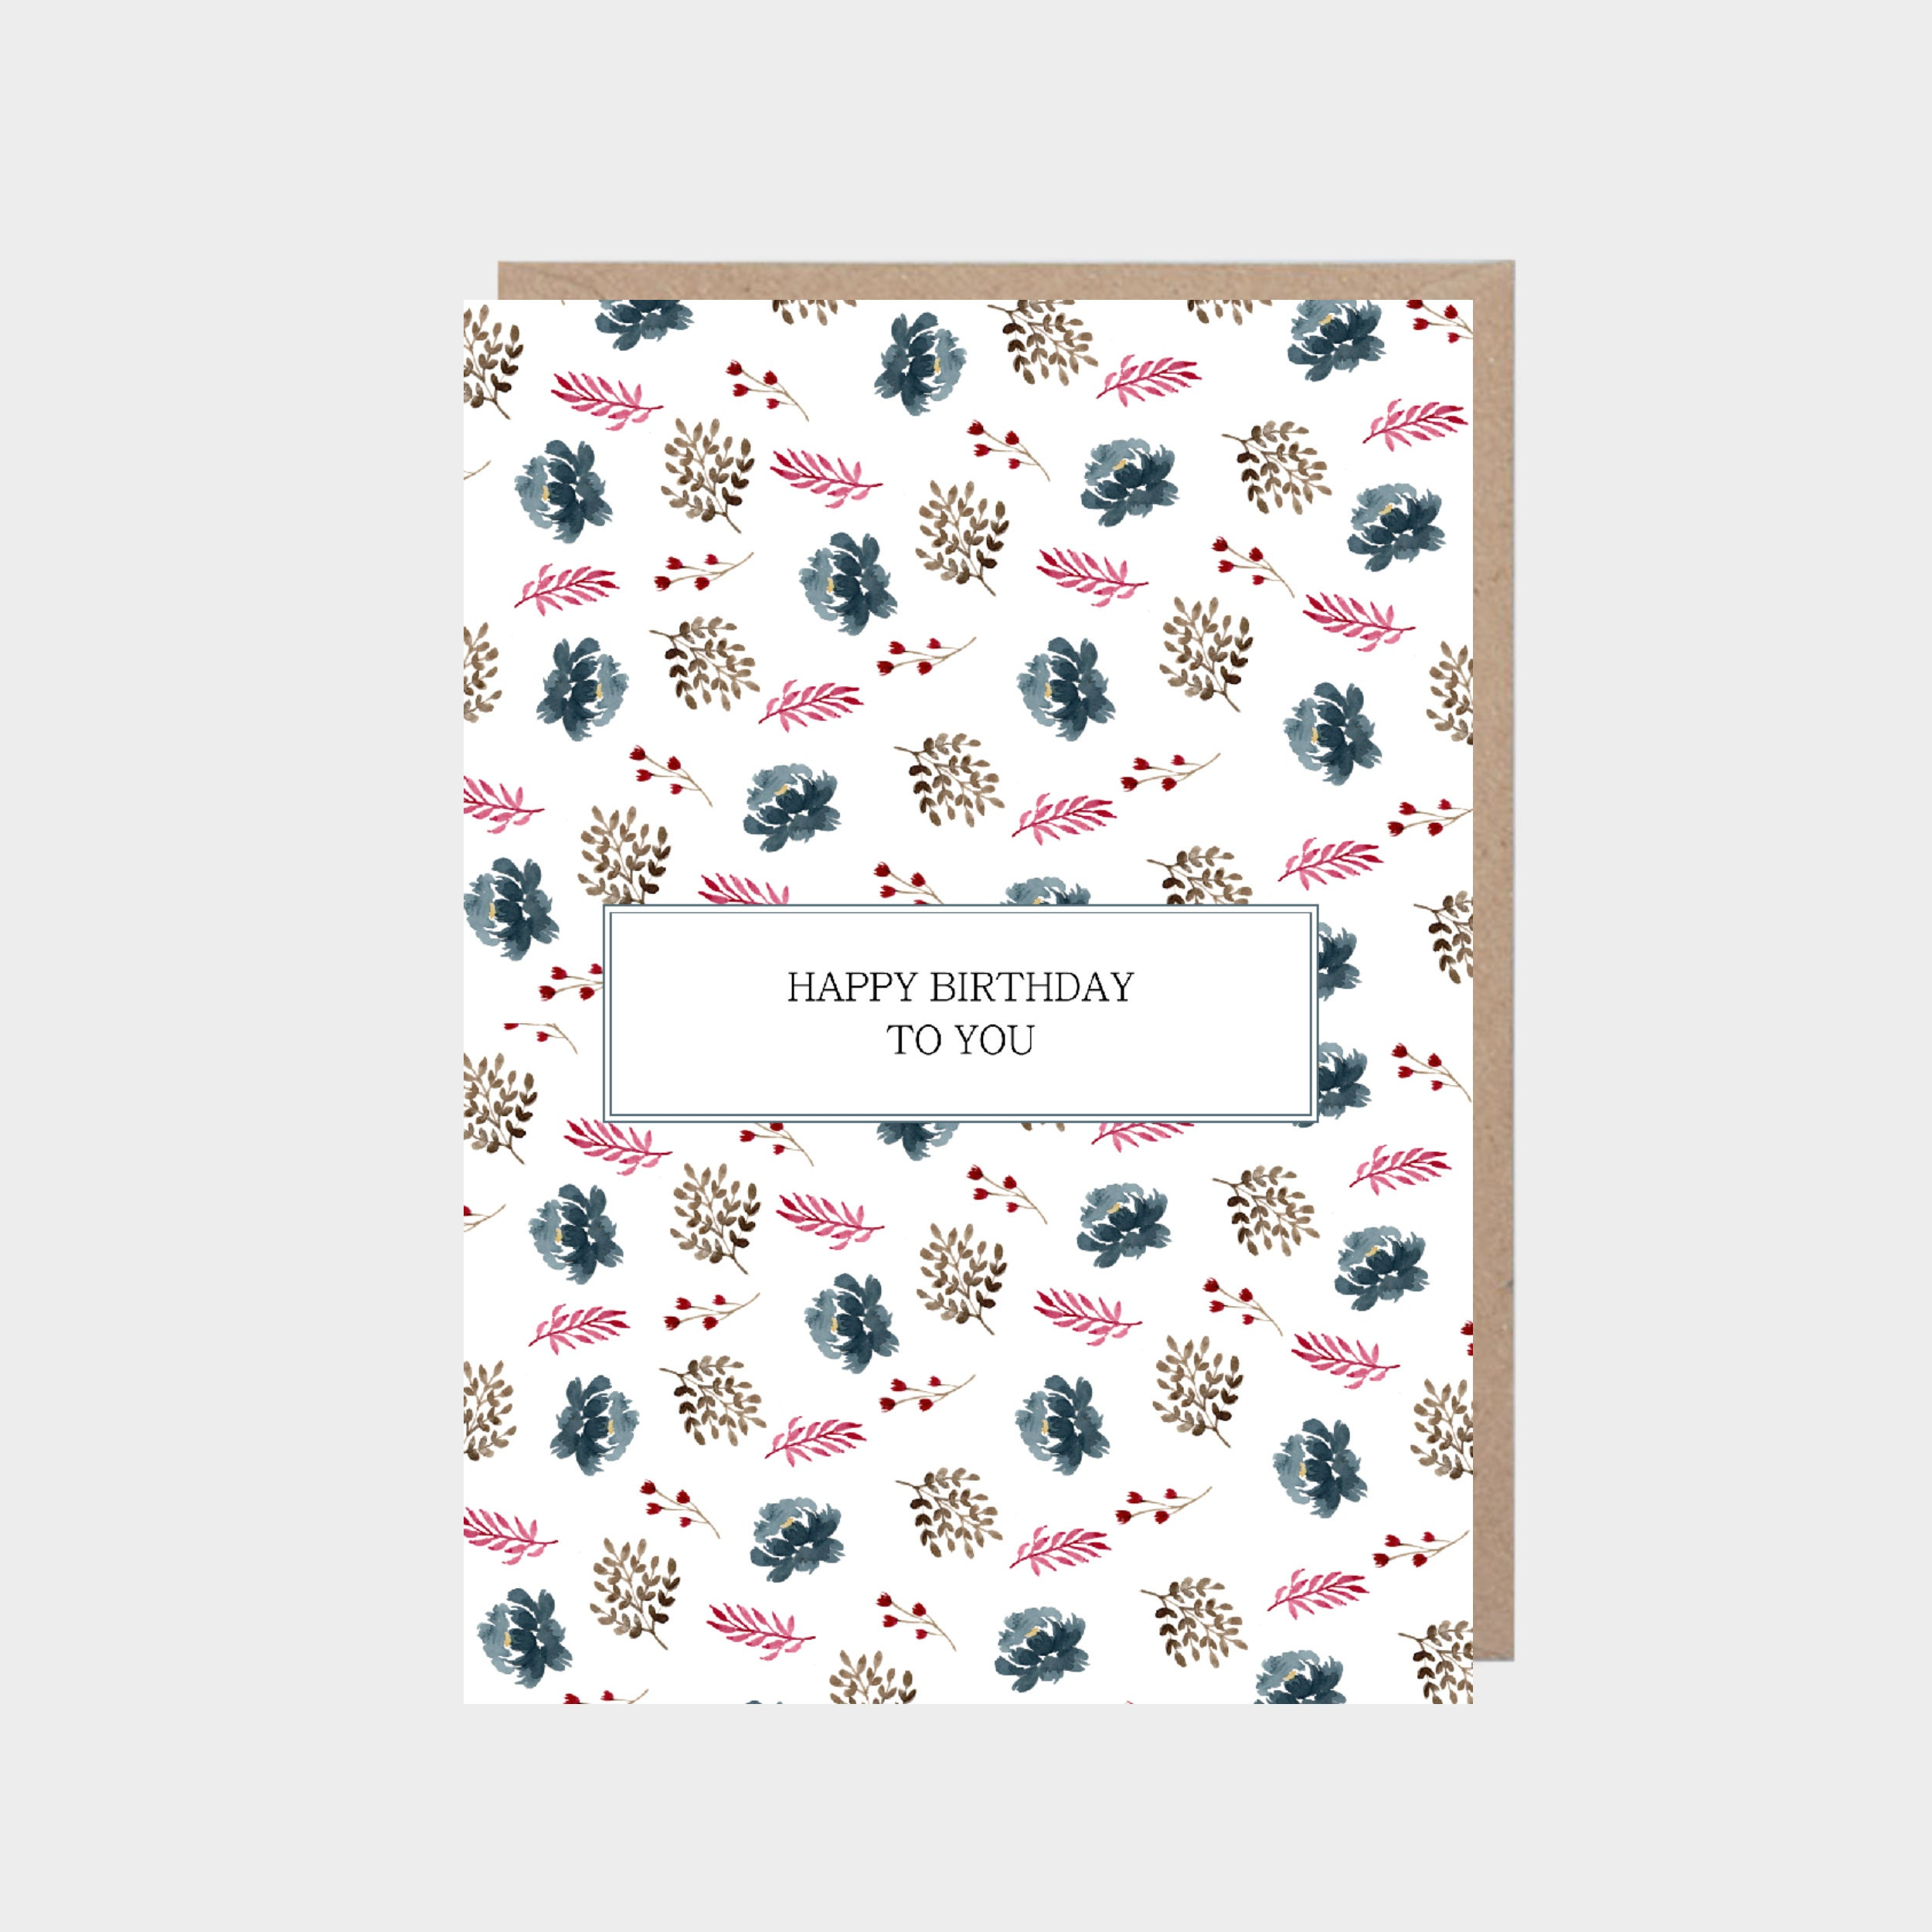 White card with an illustrated leafy and blue flowers pattern, with a brown kraft envelope.